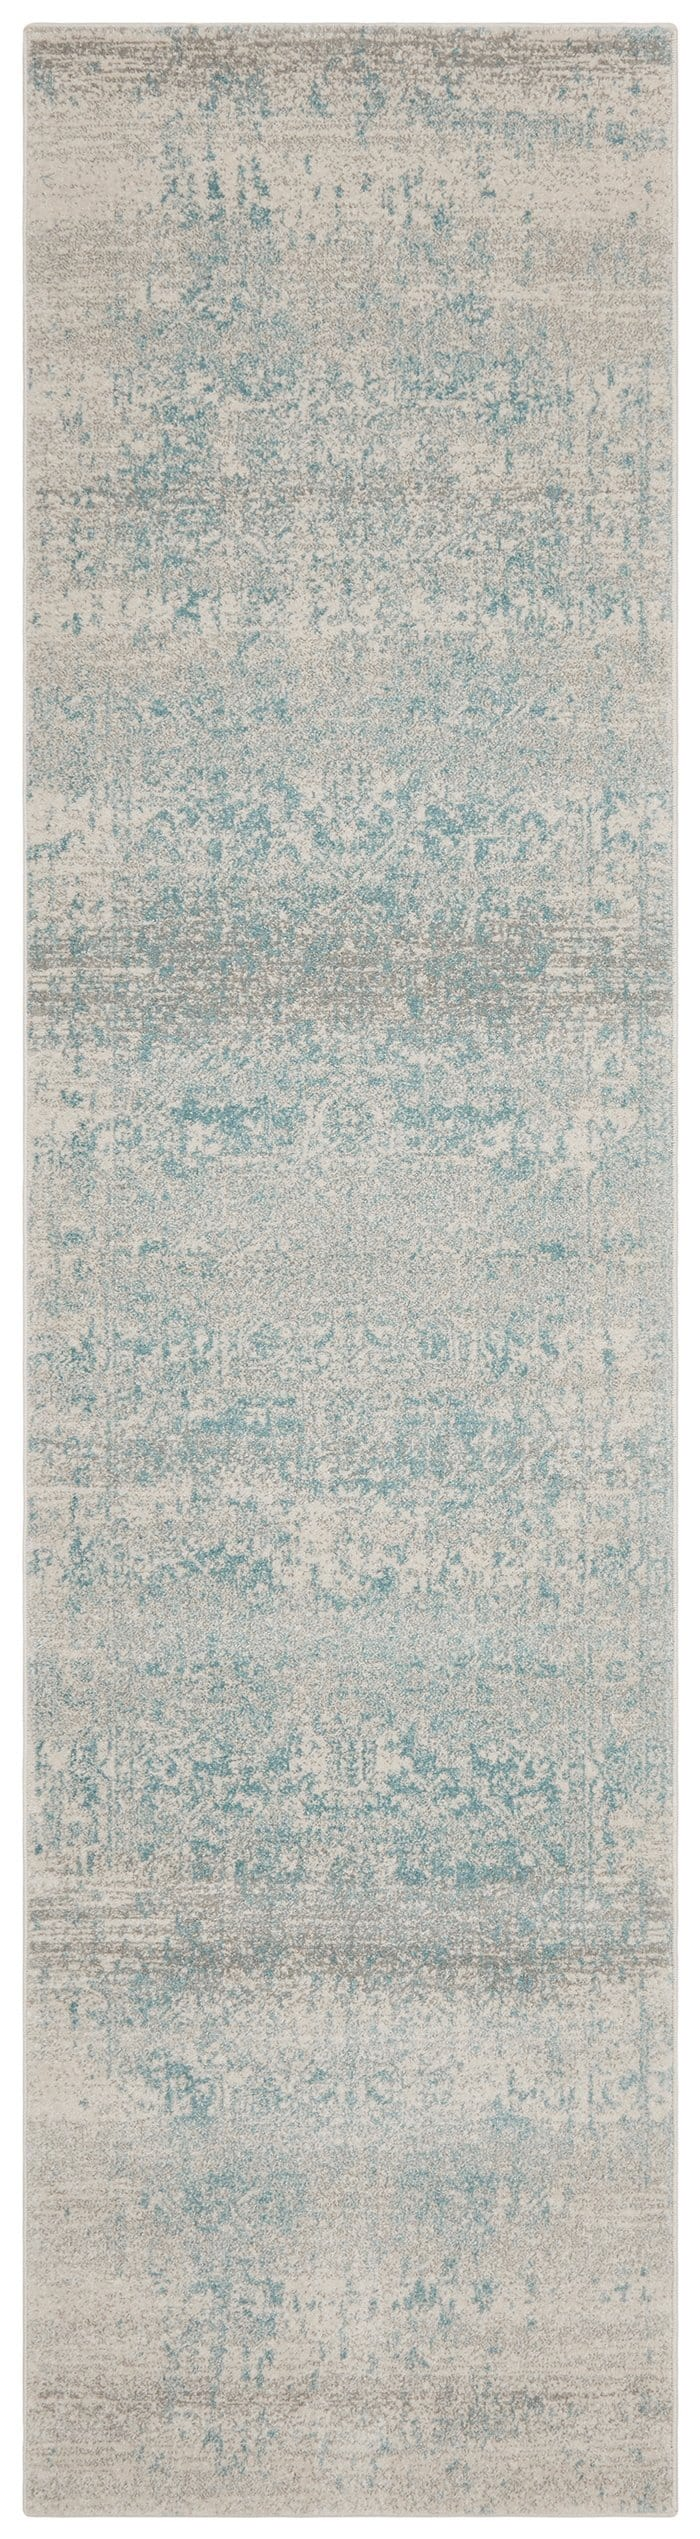 Dalvic Ivory & Light Blue Distressed Transitional Runner Rug